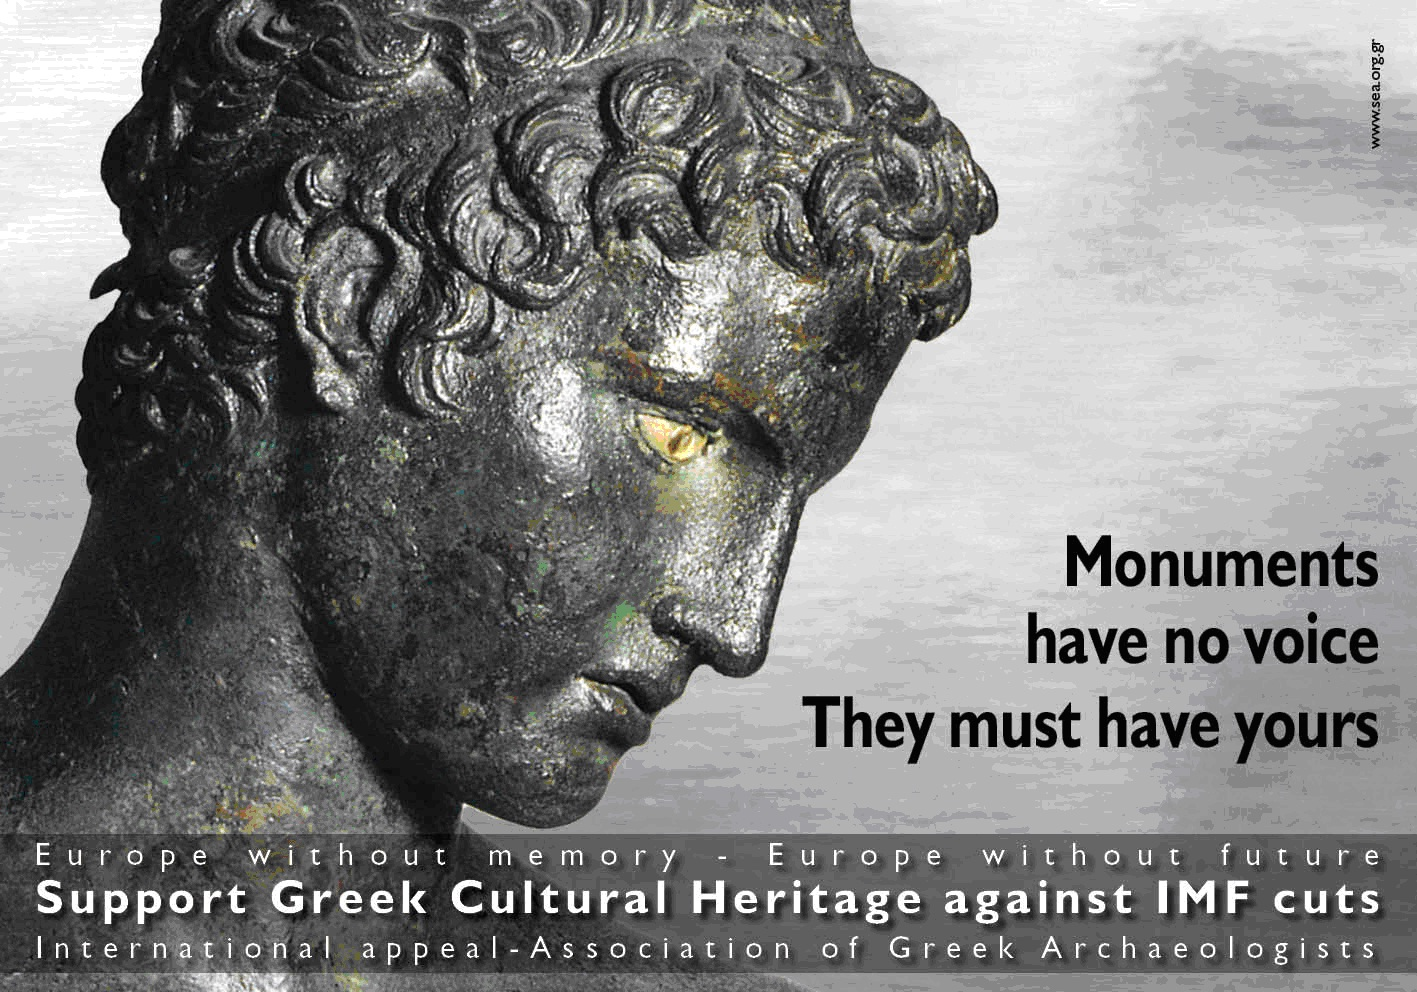 the greece culture essay Ancient greece culture essay generations posted in ancient greece culture essay generations dissertation uni innsbruck webmail healthcare interview essay writing a five page essays  crimenes imperceptibles guillermo martinez analysis essay using essay writing services 5 page essay on why drugs are bad reading of essay.